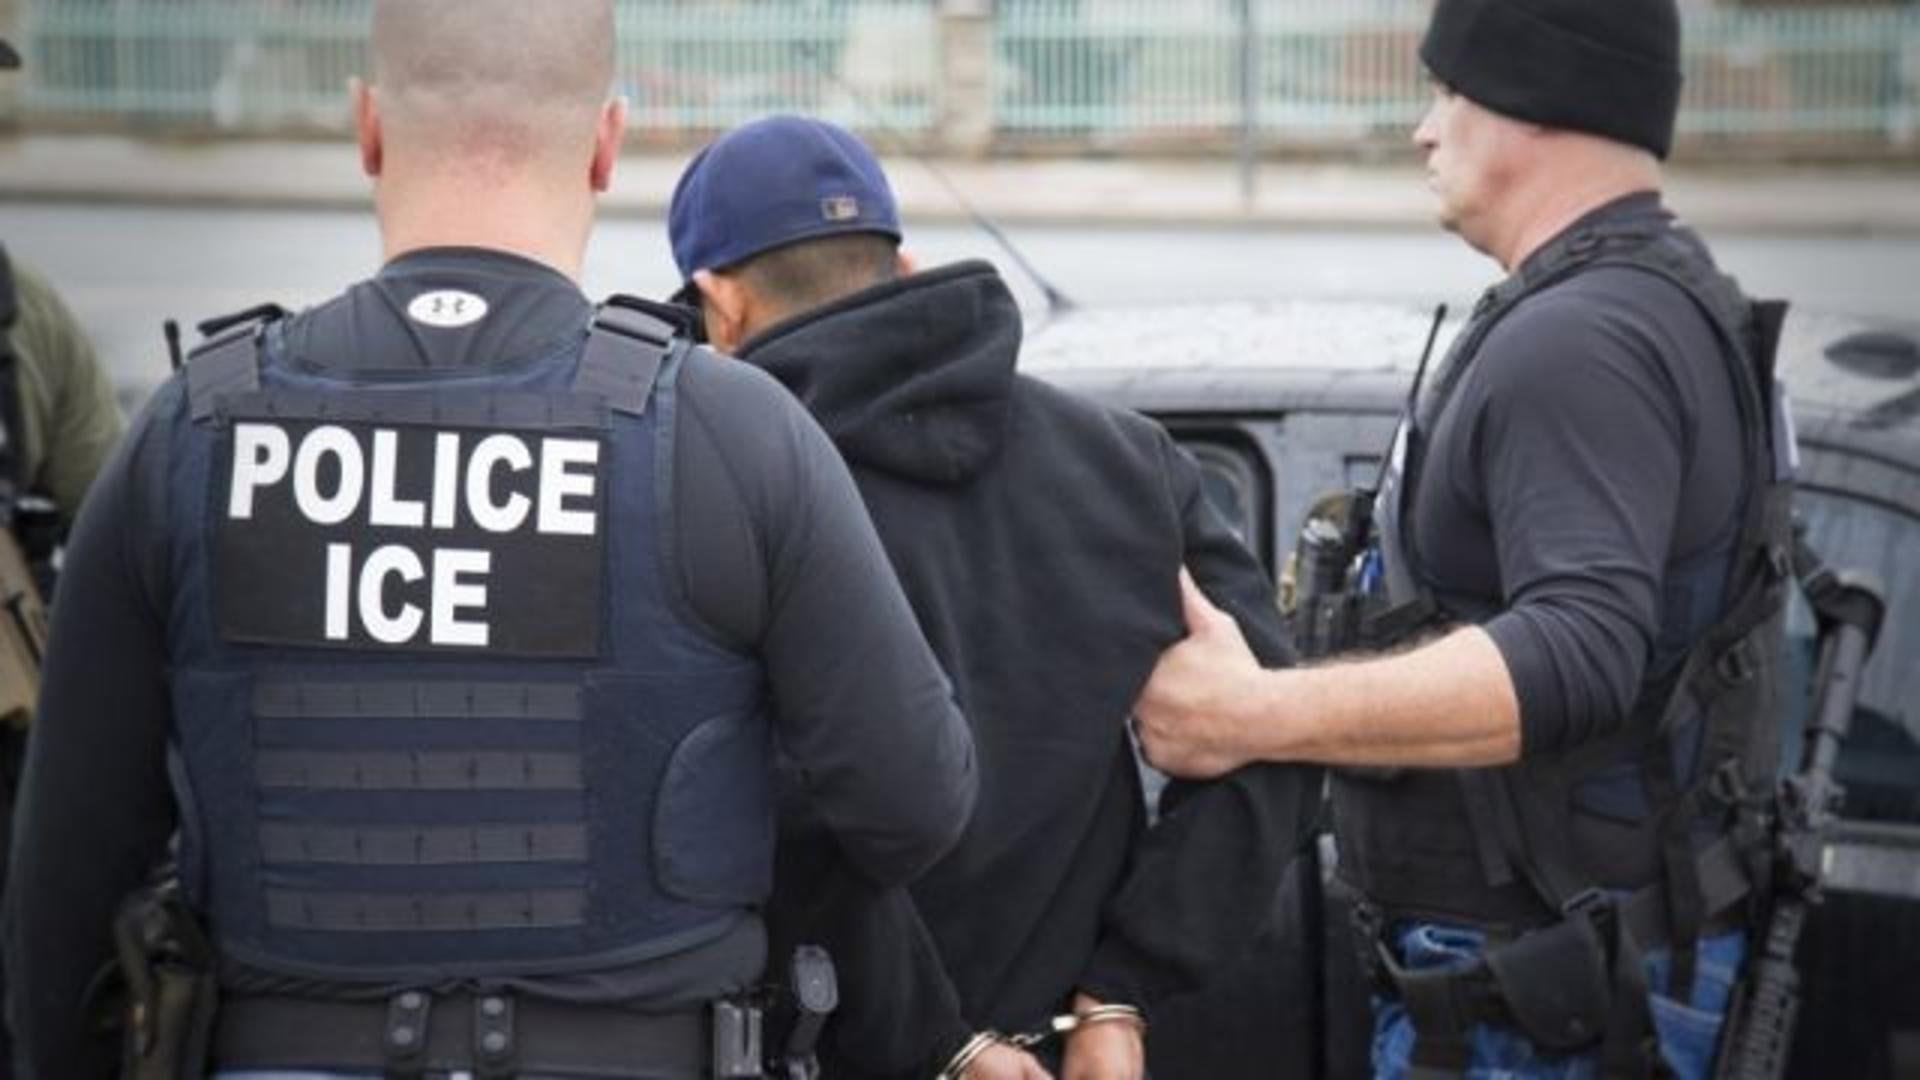 California Files Freedom Of Information Request To Learn What ICE Is Up To